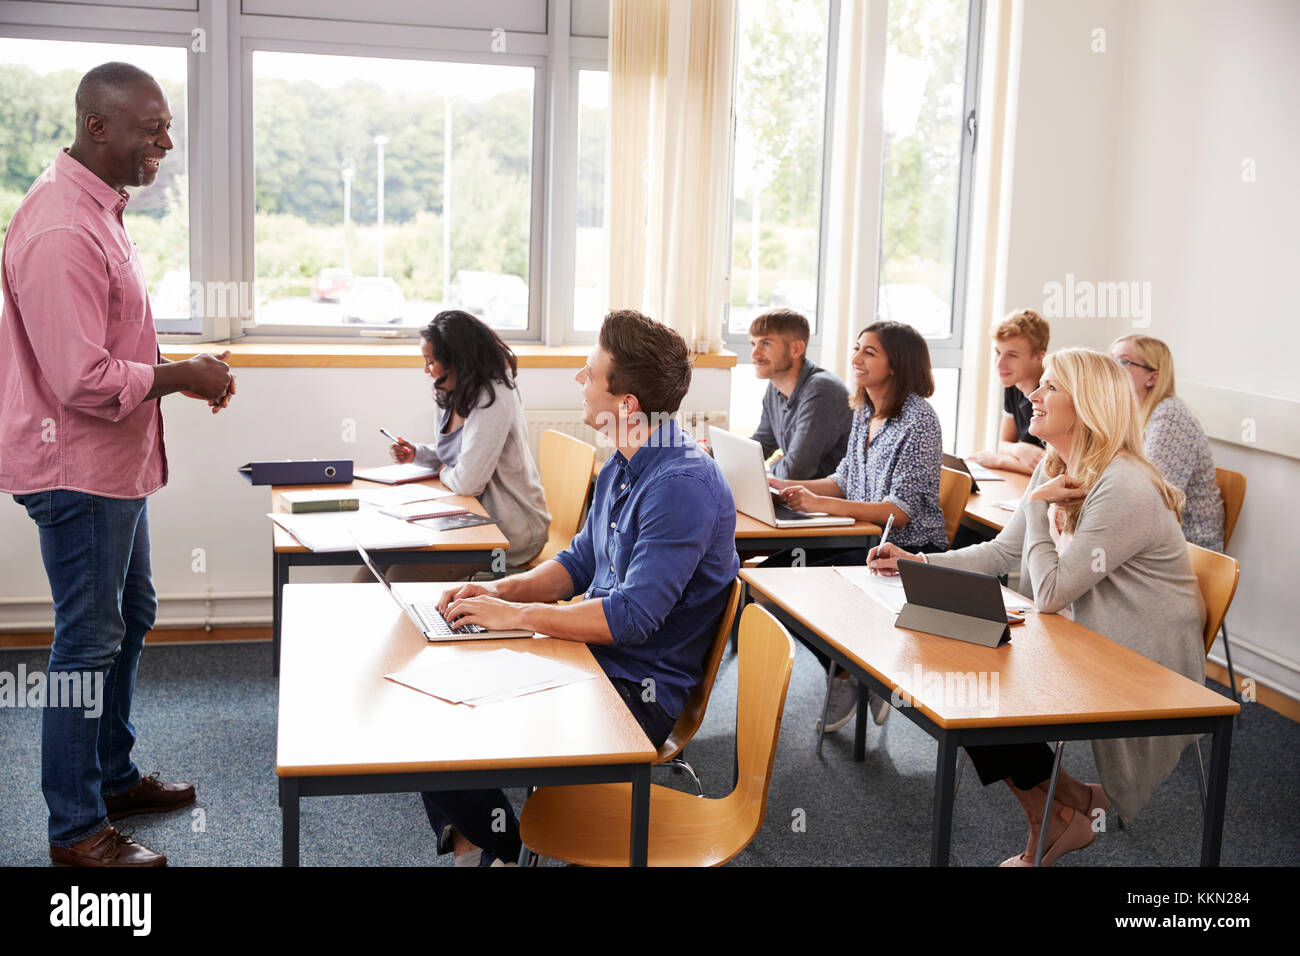 Male Tutor Teaching Class Of Mature Students - Stock Image